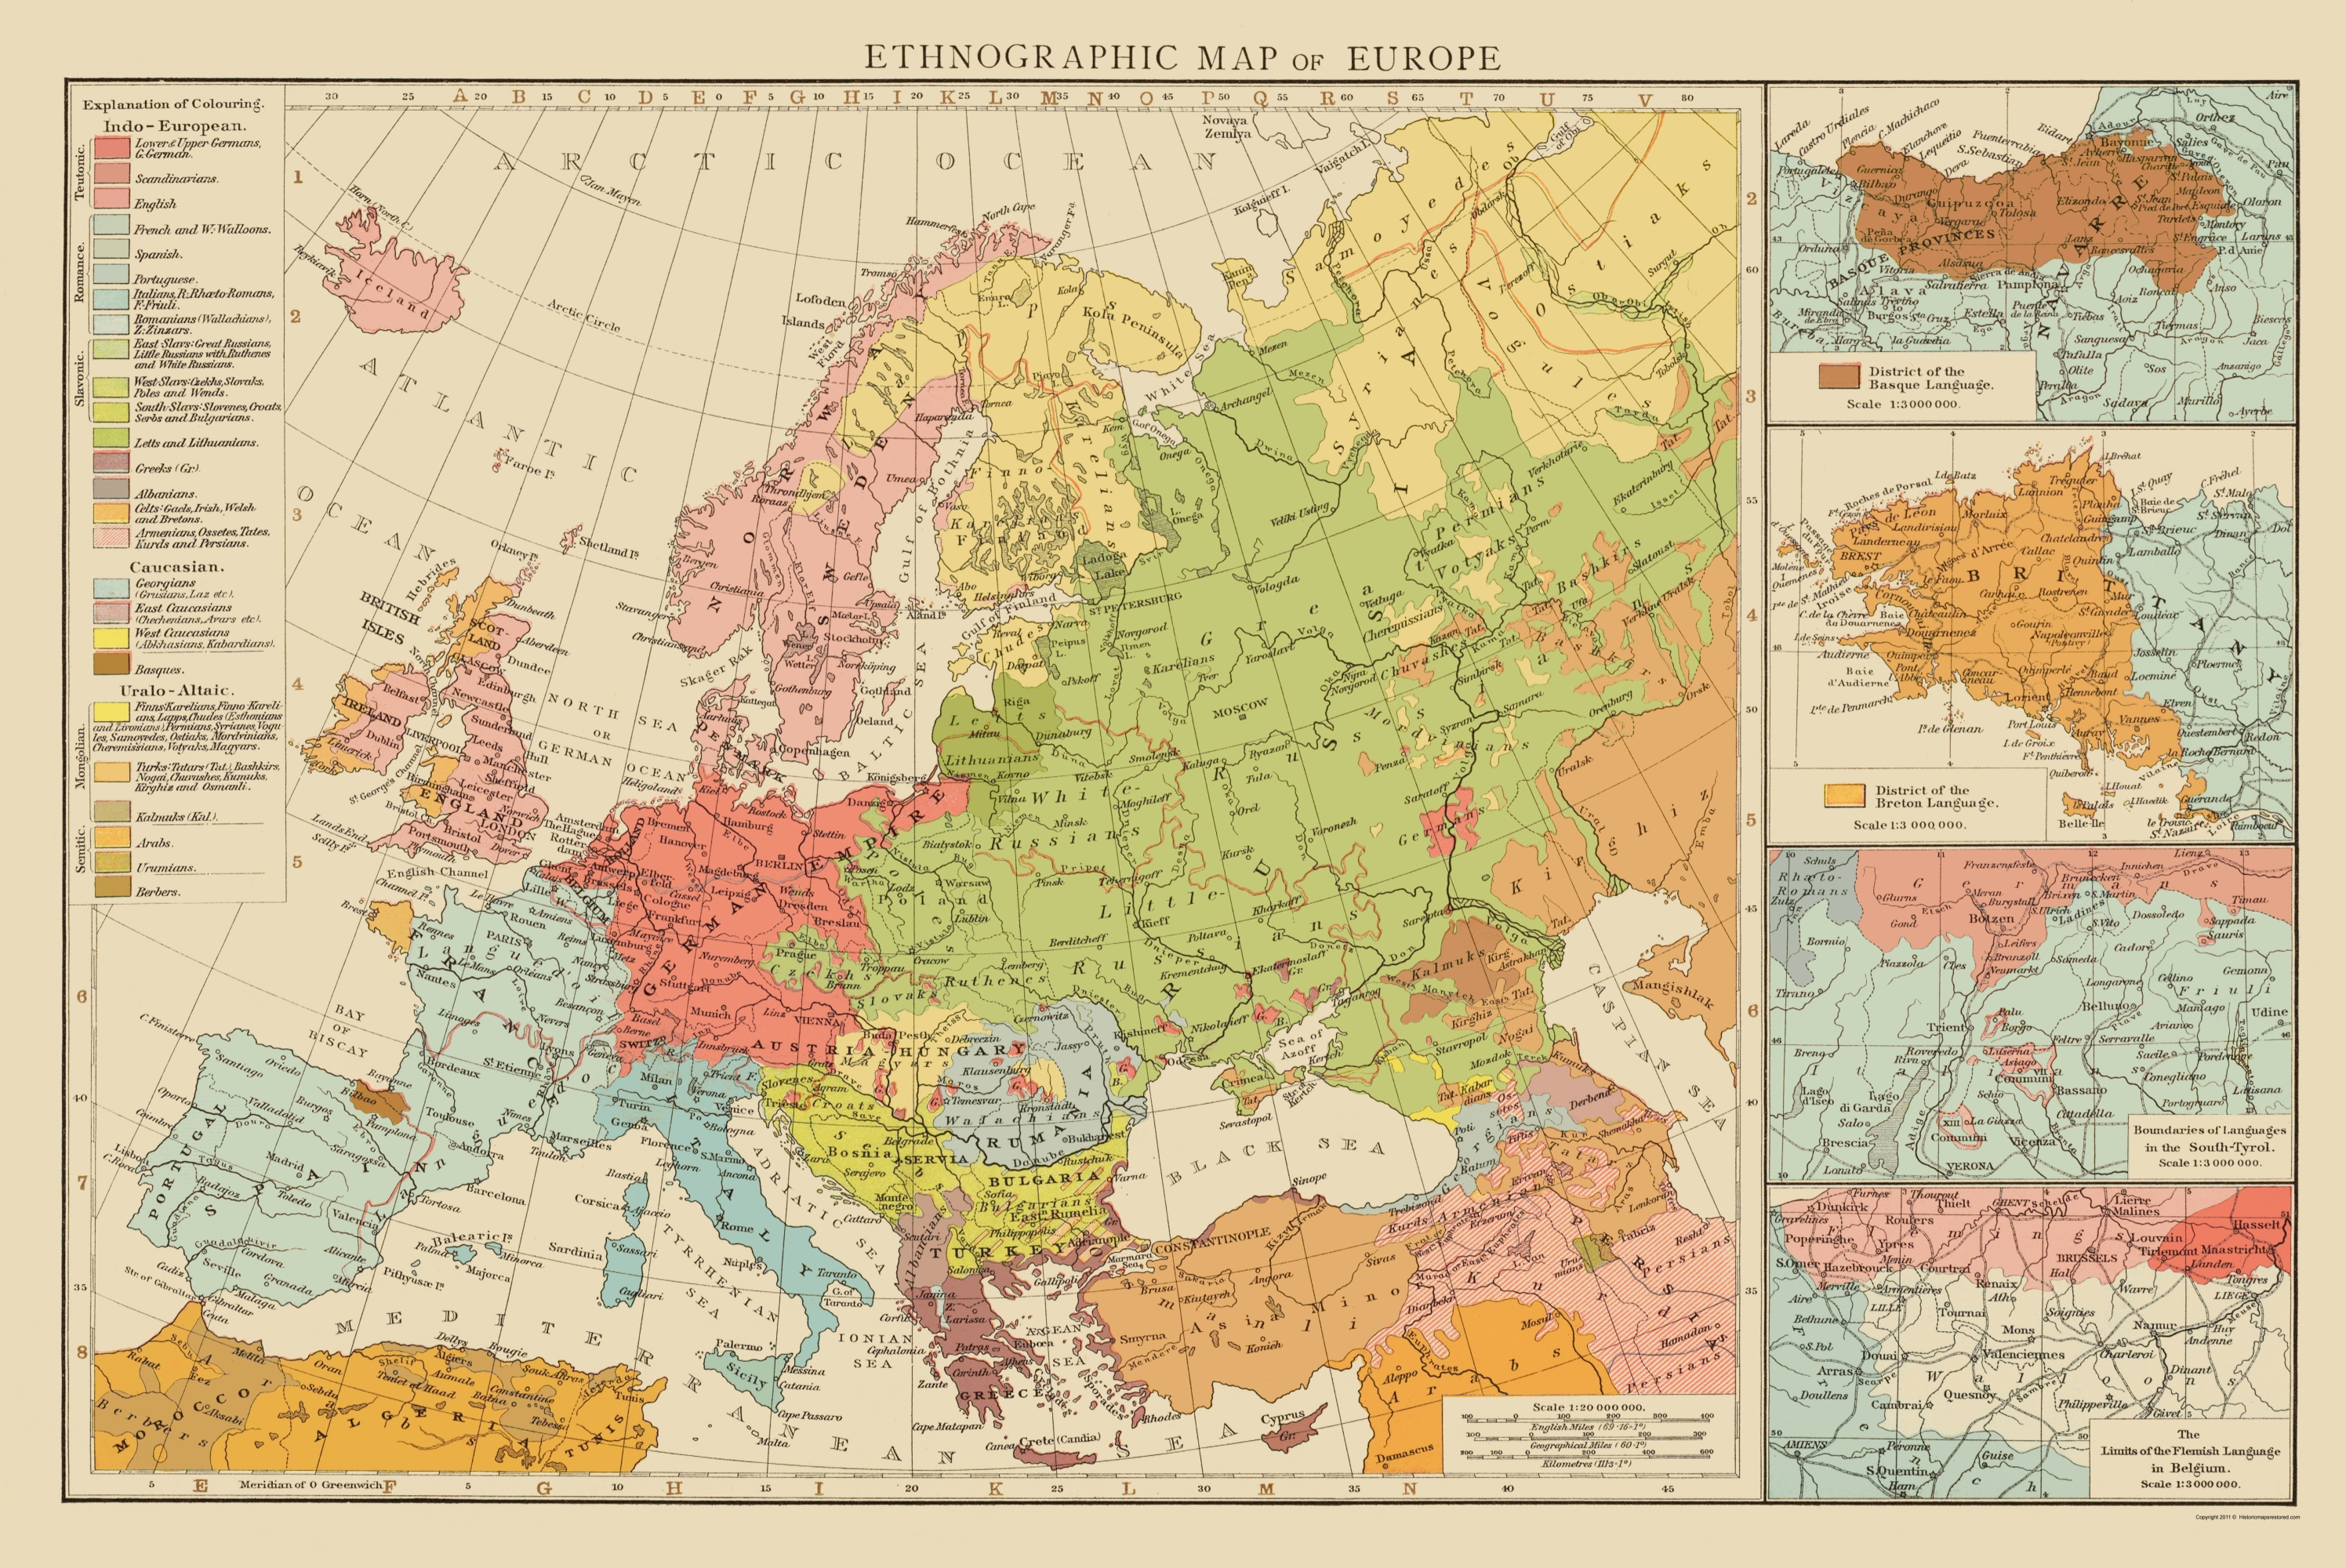 Old Europe Map - Ethnic Distribution of Europe 1895